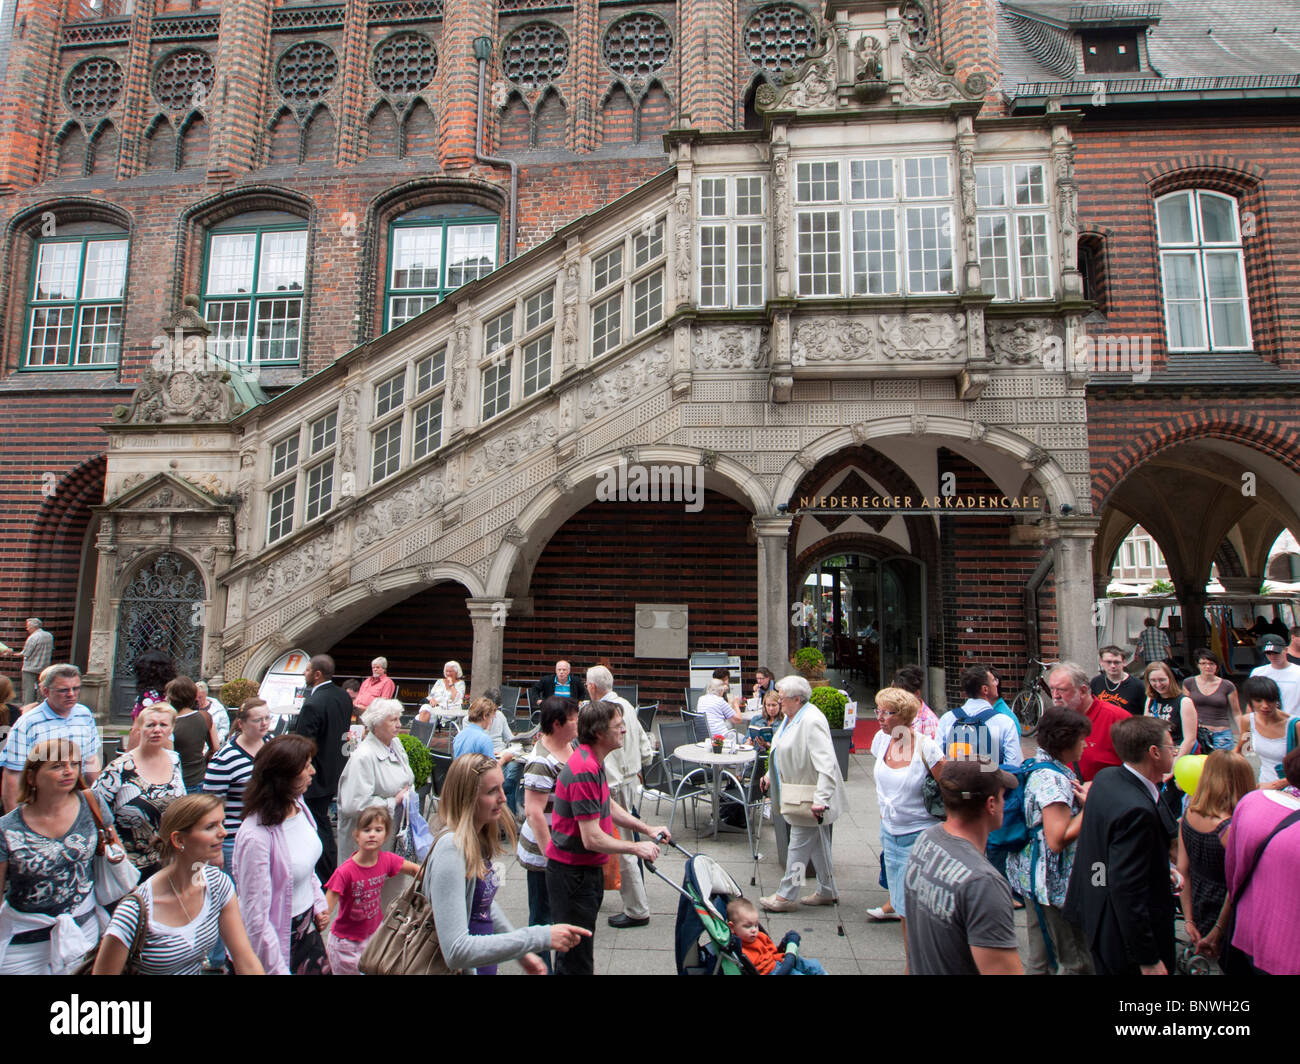 View of historic Rathaustreppe in city of Lubeck in Germany - Stock Image